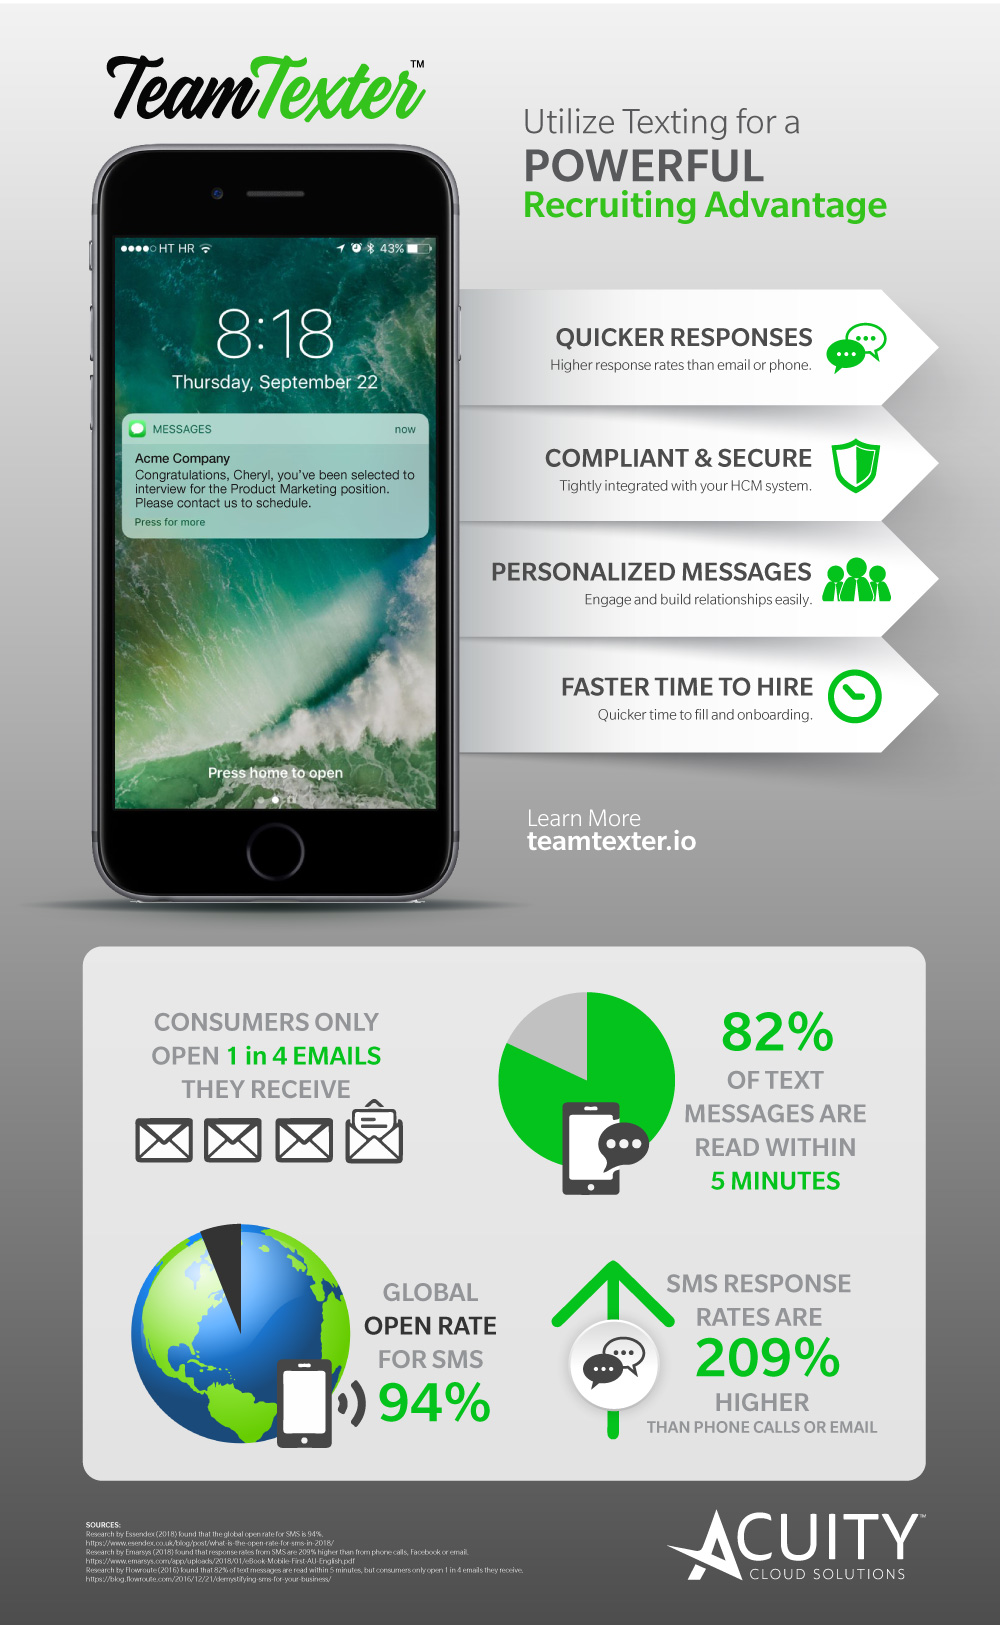 TeamTexter Recruiting Advantage Infographic